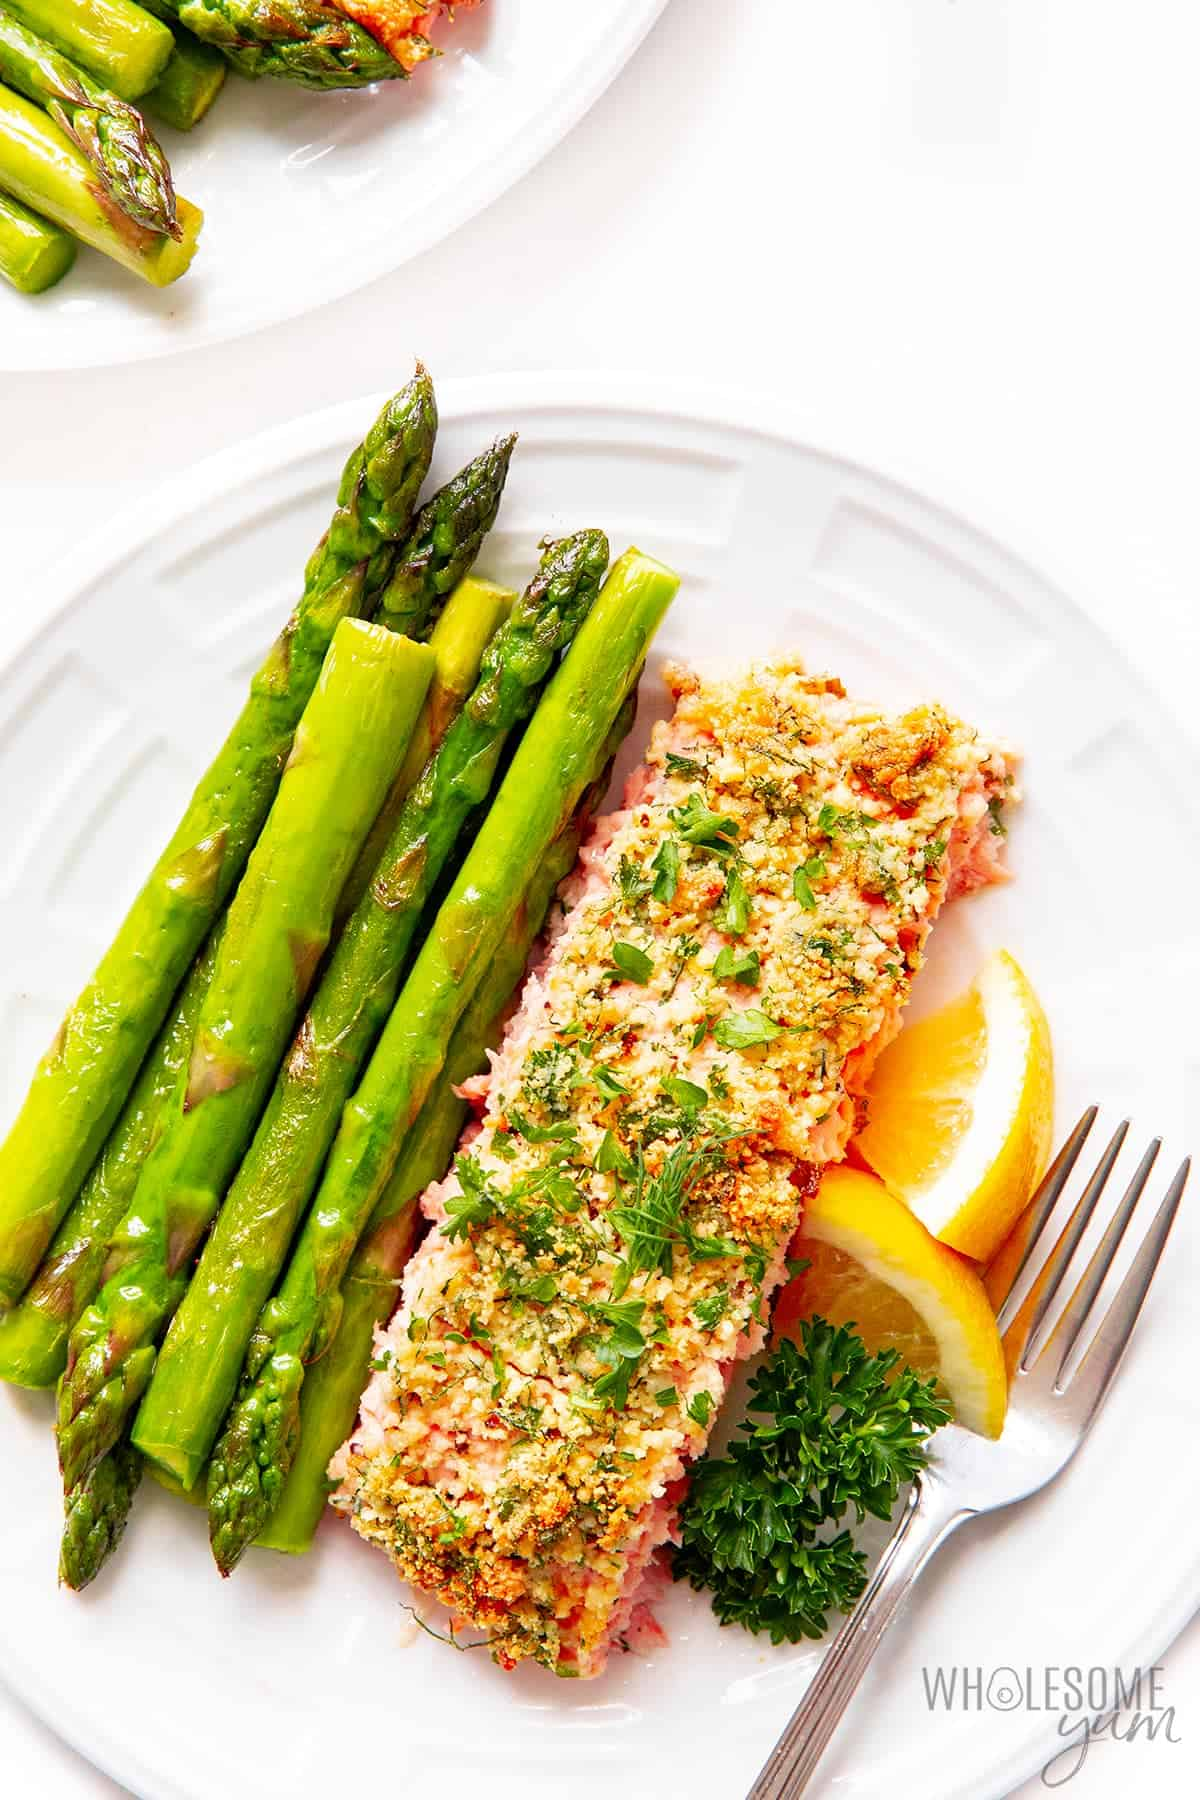 Parmesan crusted salmon fillet with asparagus on a plate